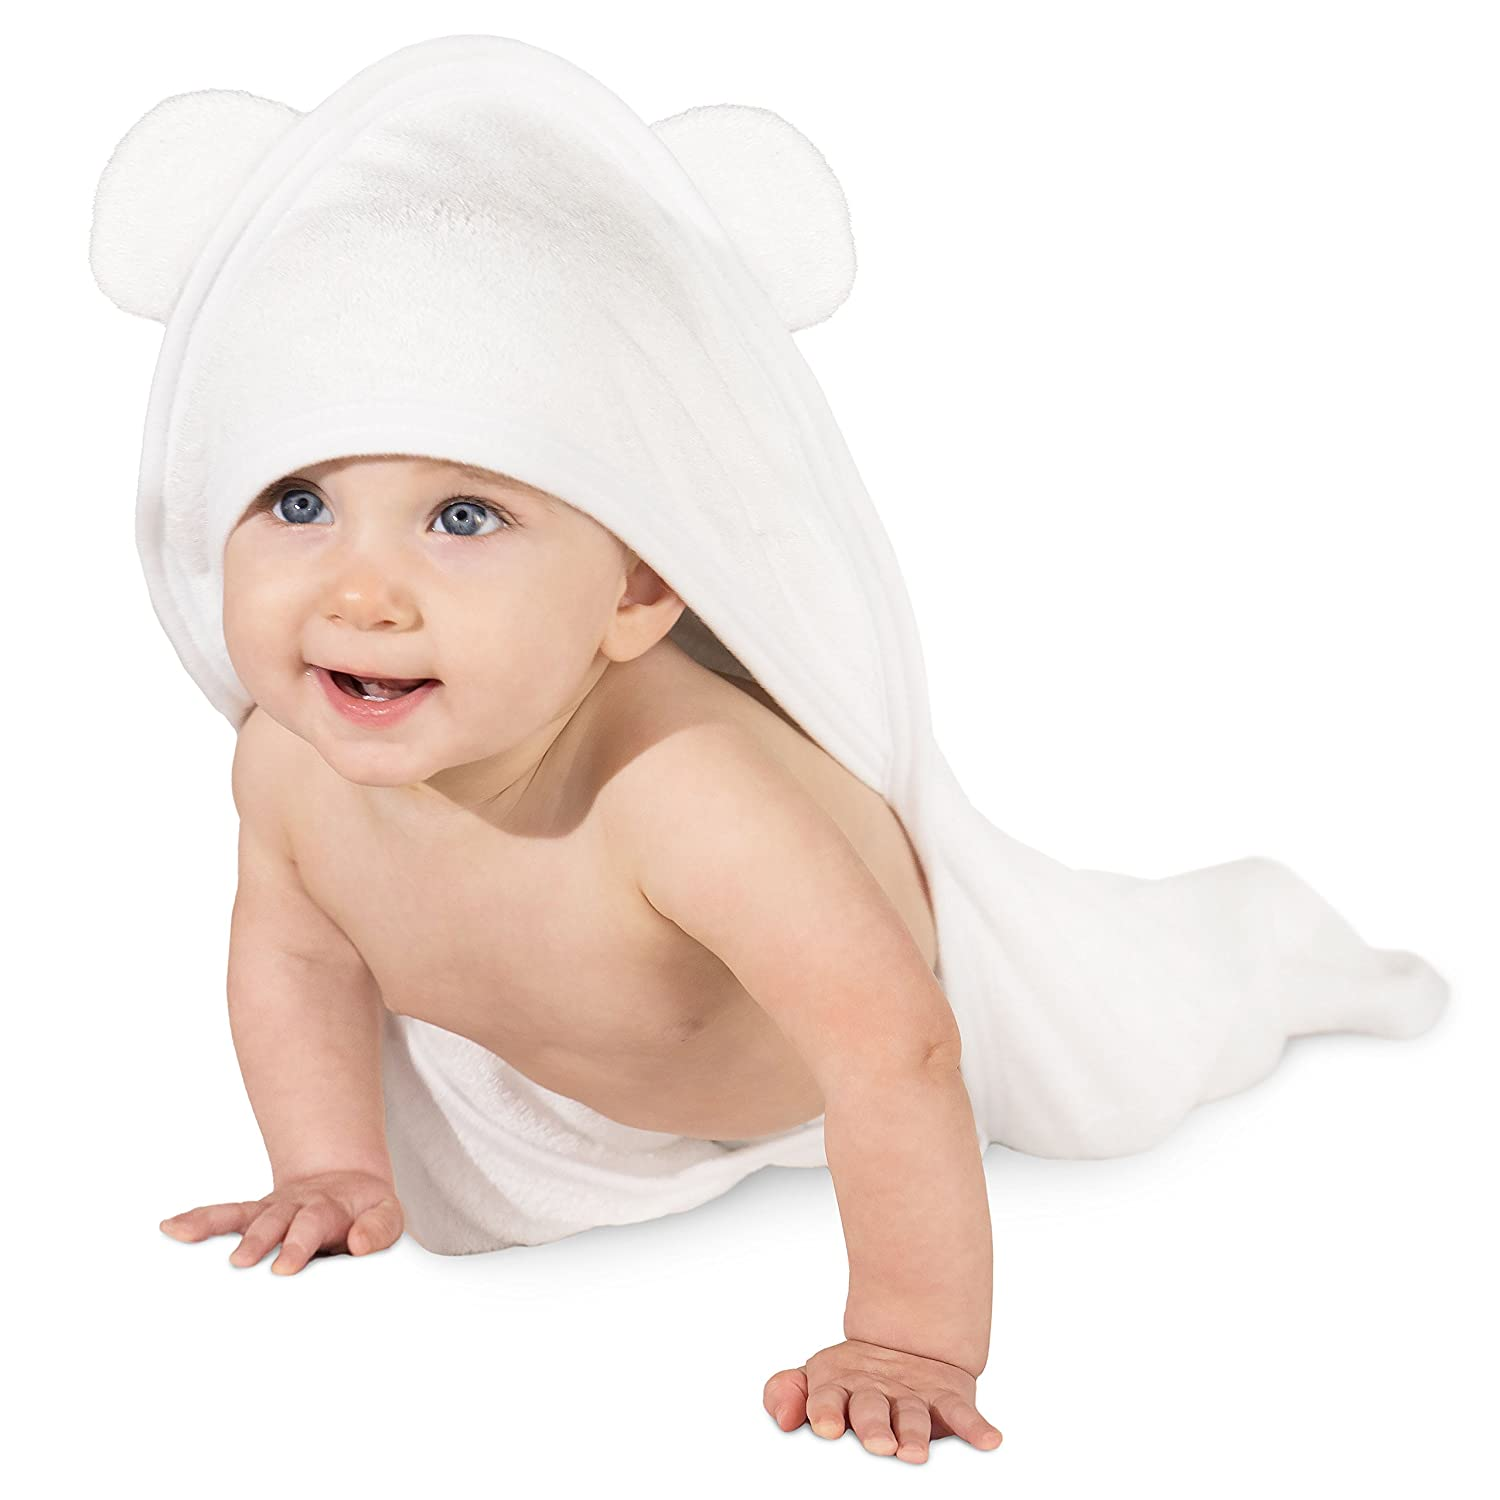 Bamboo Hooded Baby Towel: Ultra Soft Hypoallergenic Infant Boy & Girl Bath Towel LullaBaby